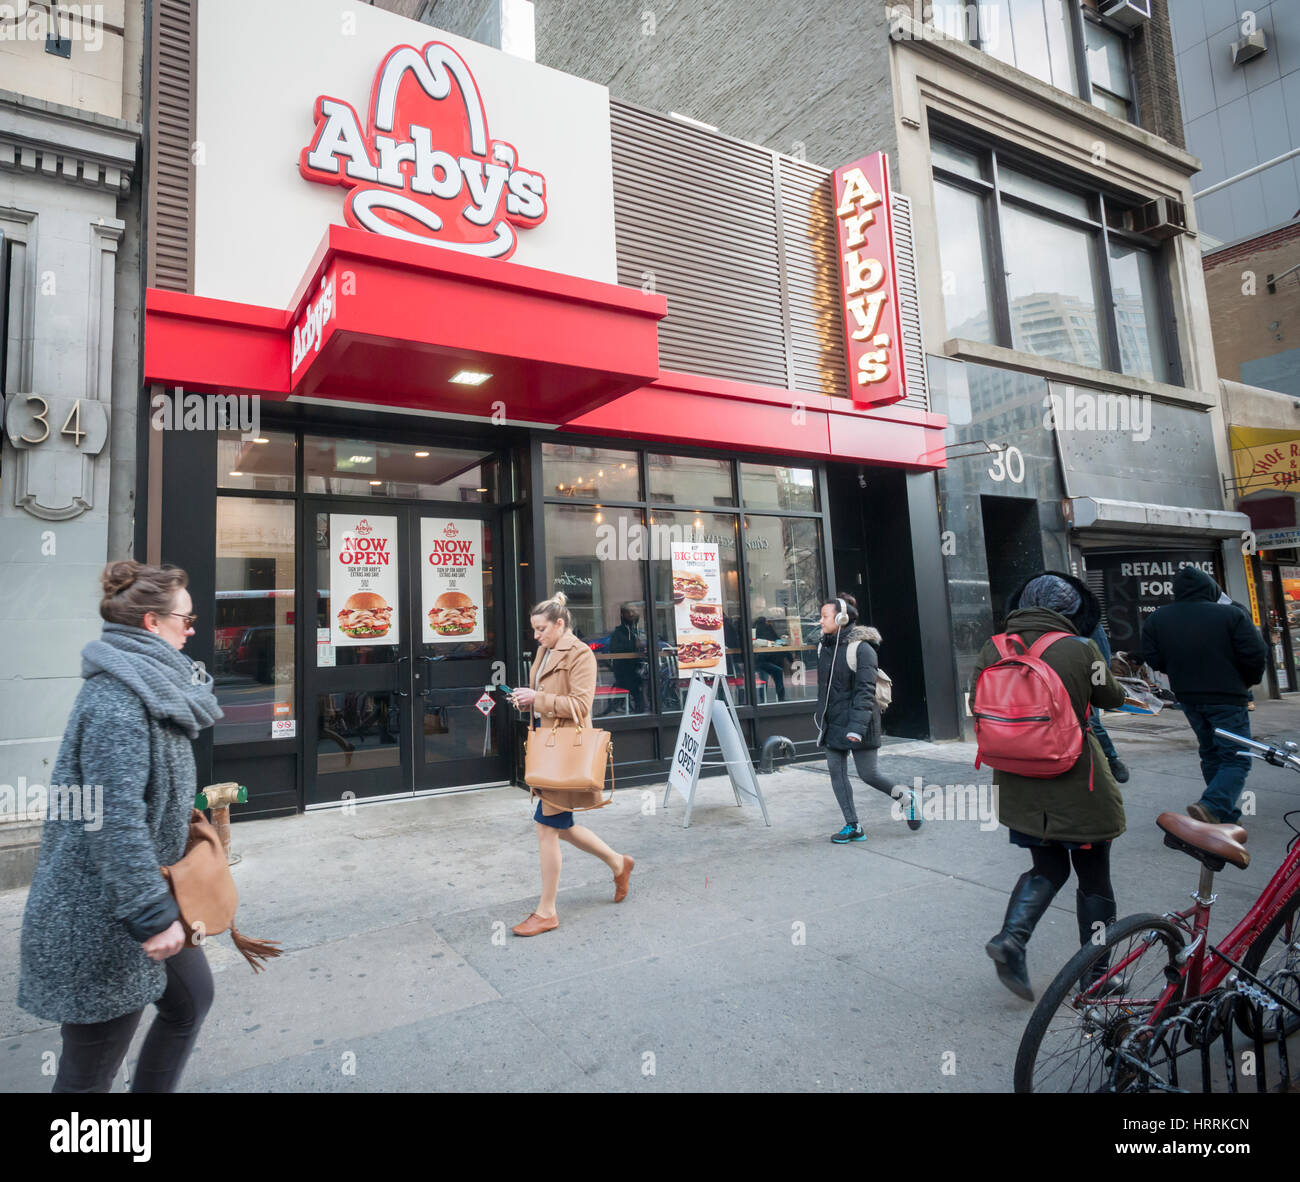 the new arby's fast casual restaurant in chelsea in new york on